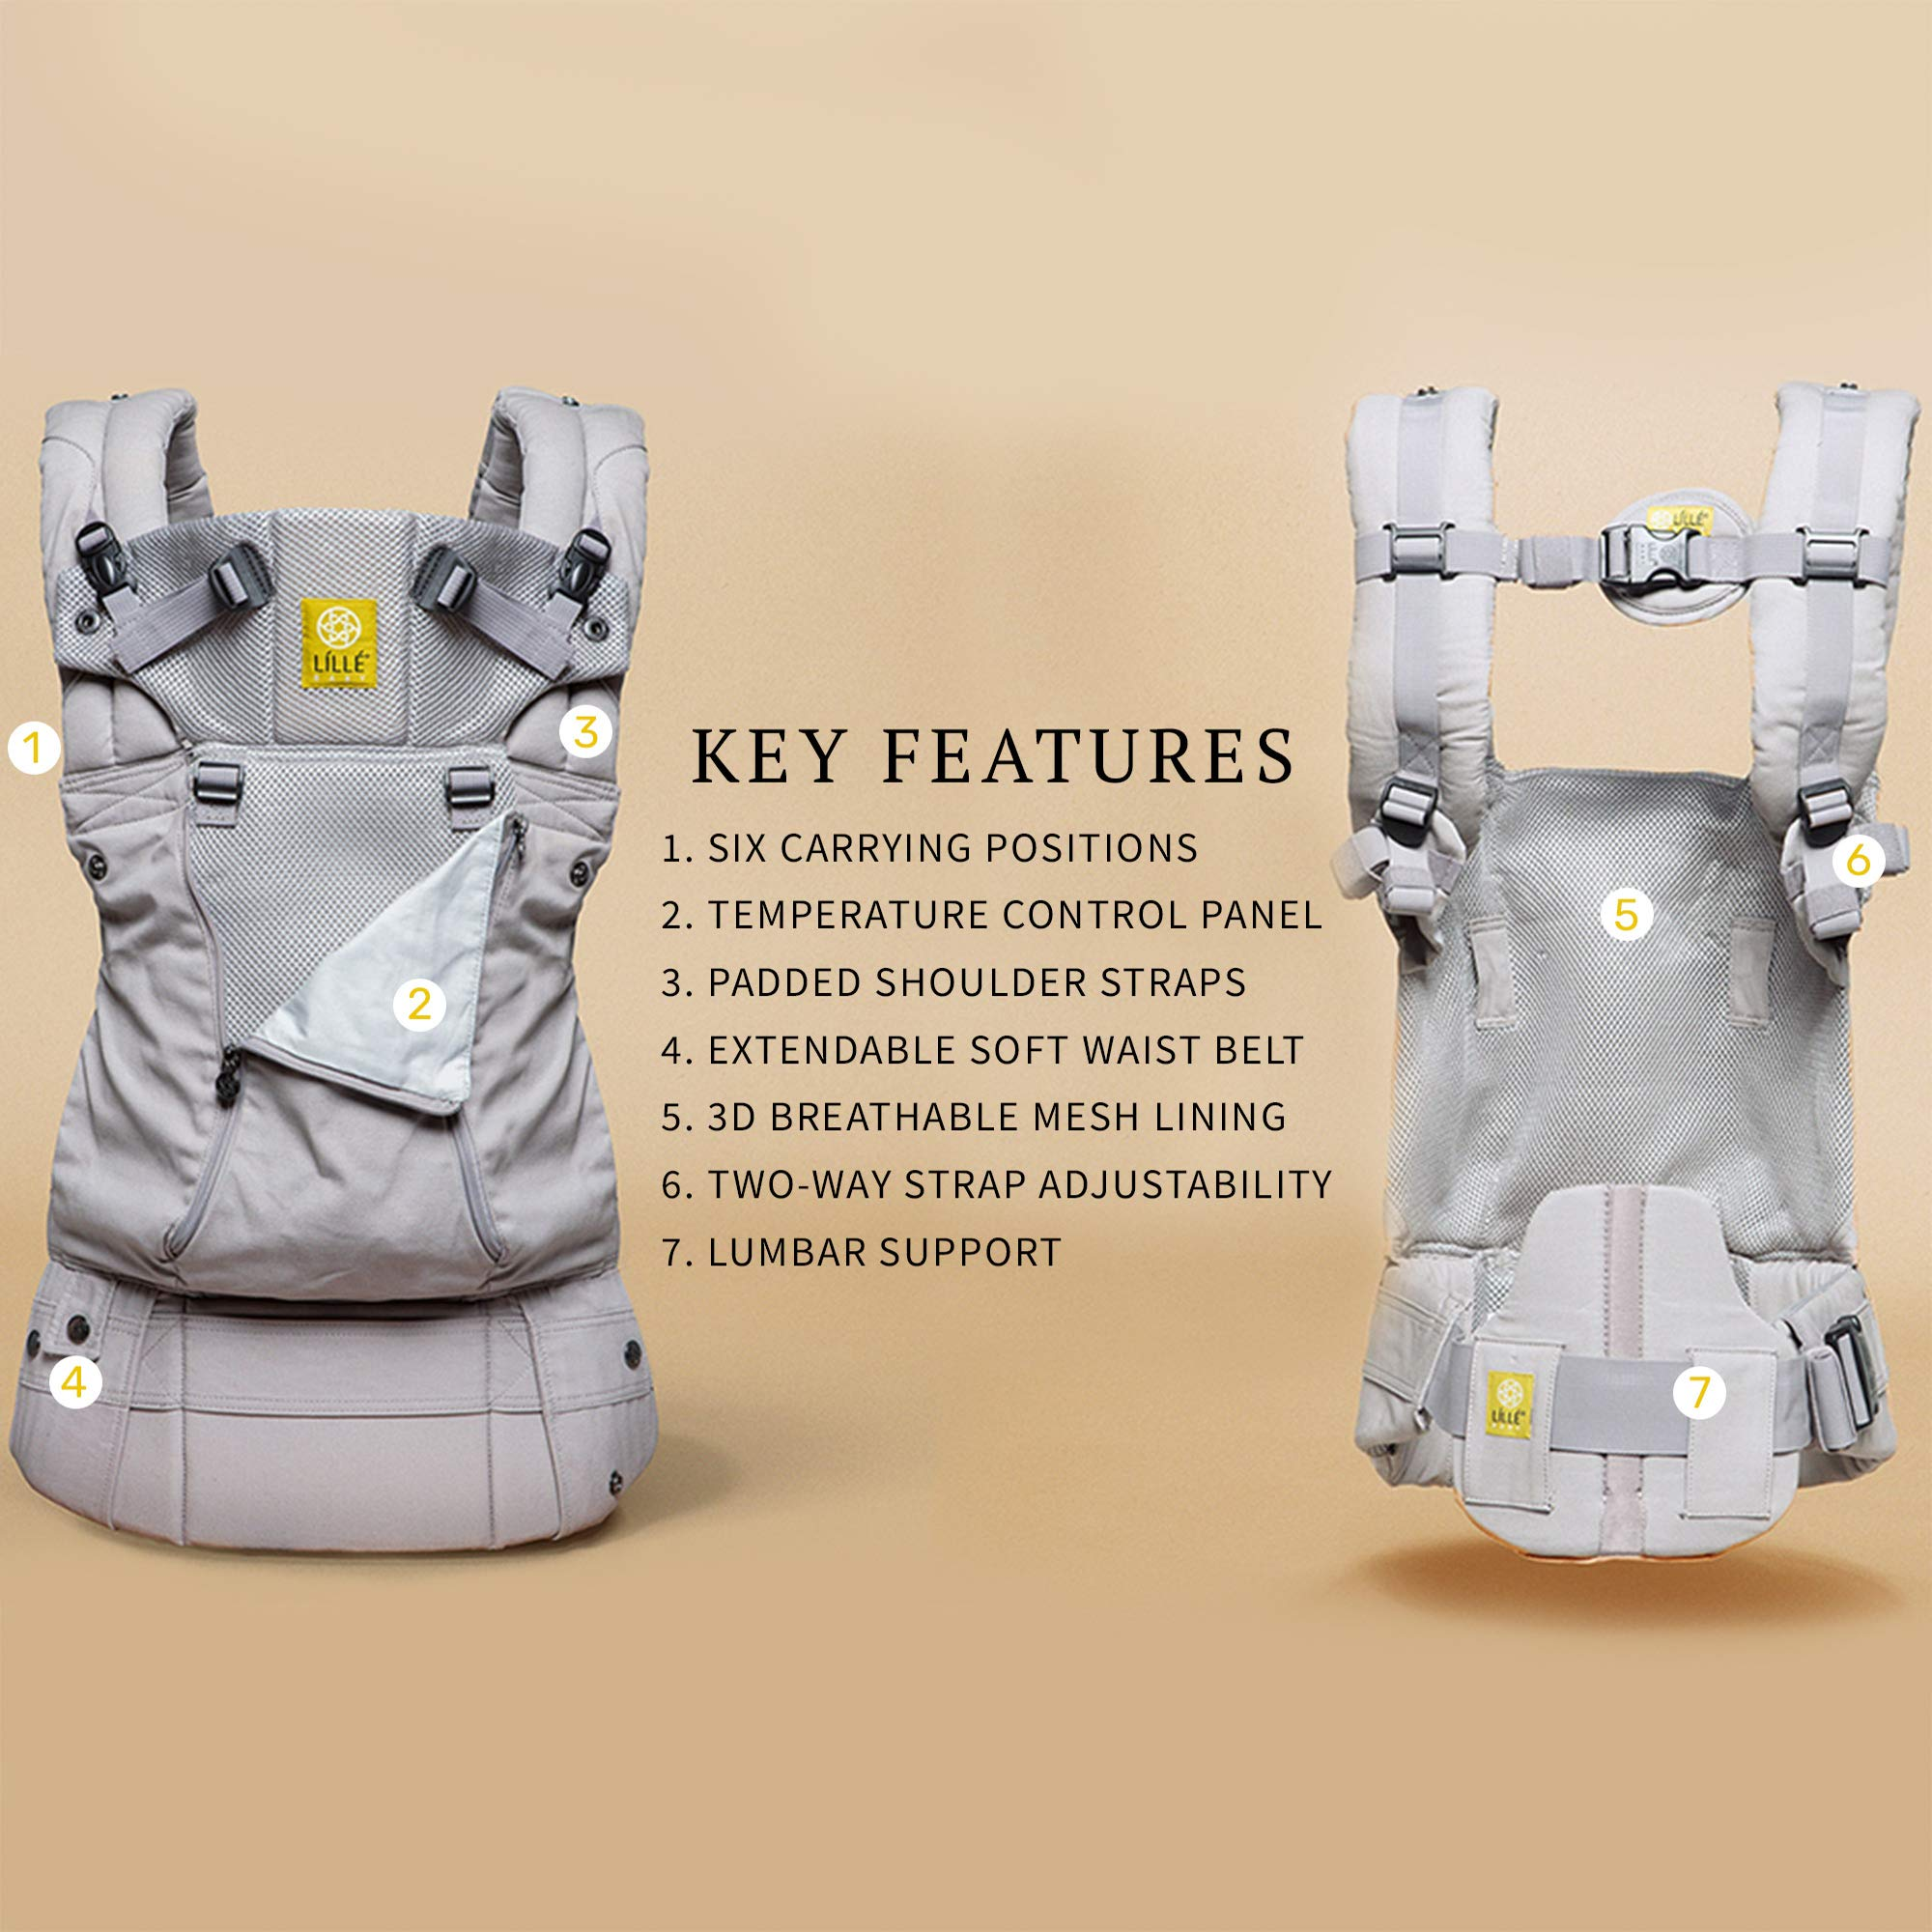 LILLEbaby SIX-Position, 360° Ergonomic Baby & Child Carrier by LILLEbaby – The COMPLETE All Seasons (Stone) by LILLEbaby (Image #3)